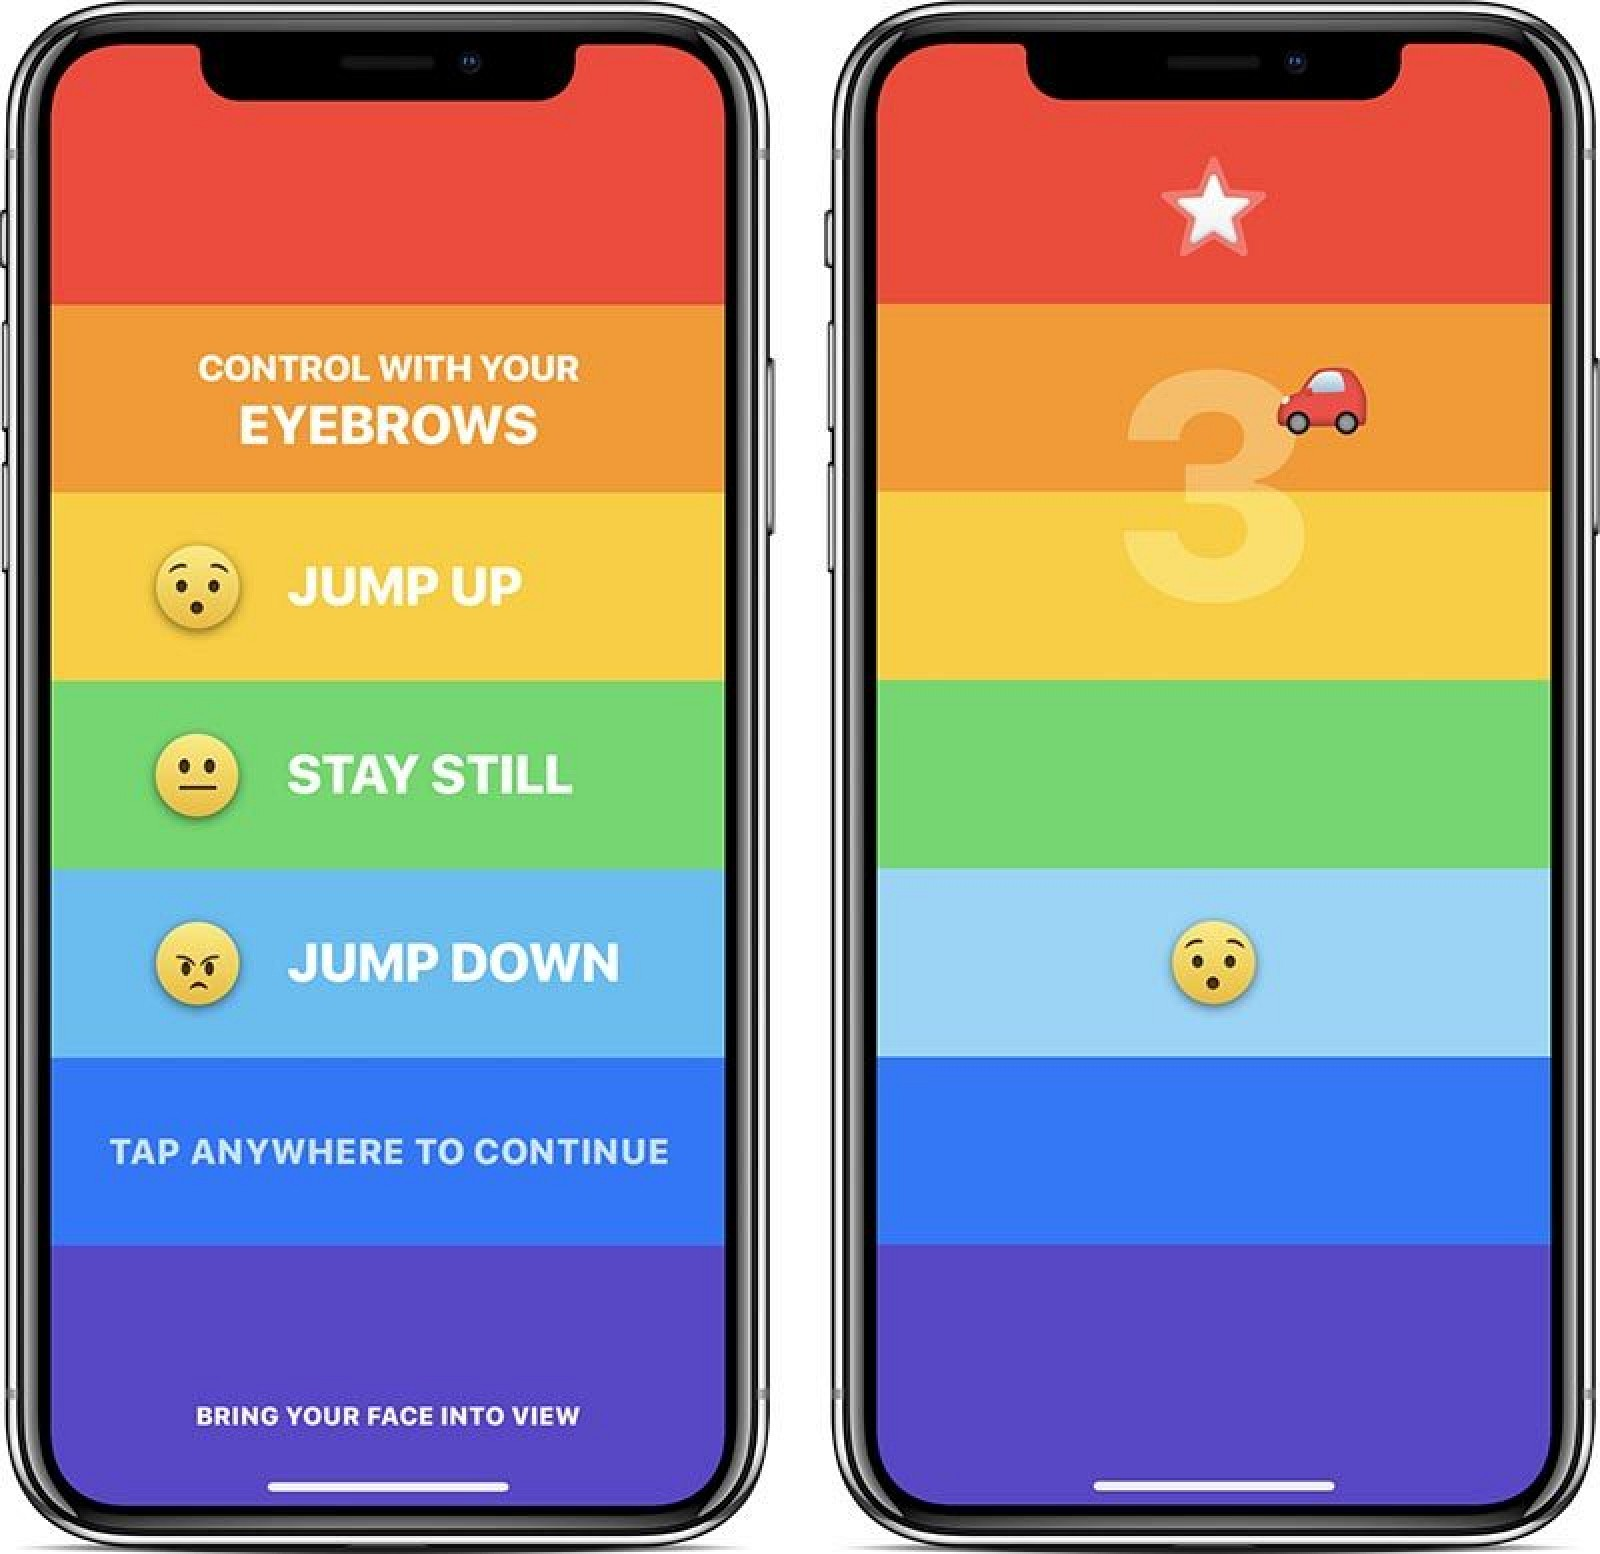 Rainbrow: New Eyebrow-Controlled Game for iPhone X Takes Advantage of TrueDepth Camera System